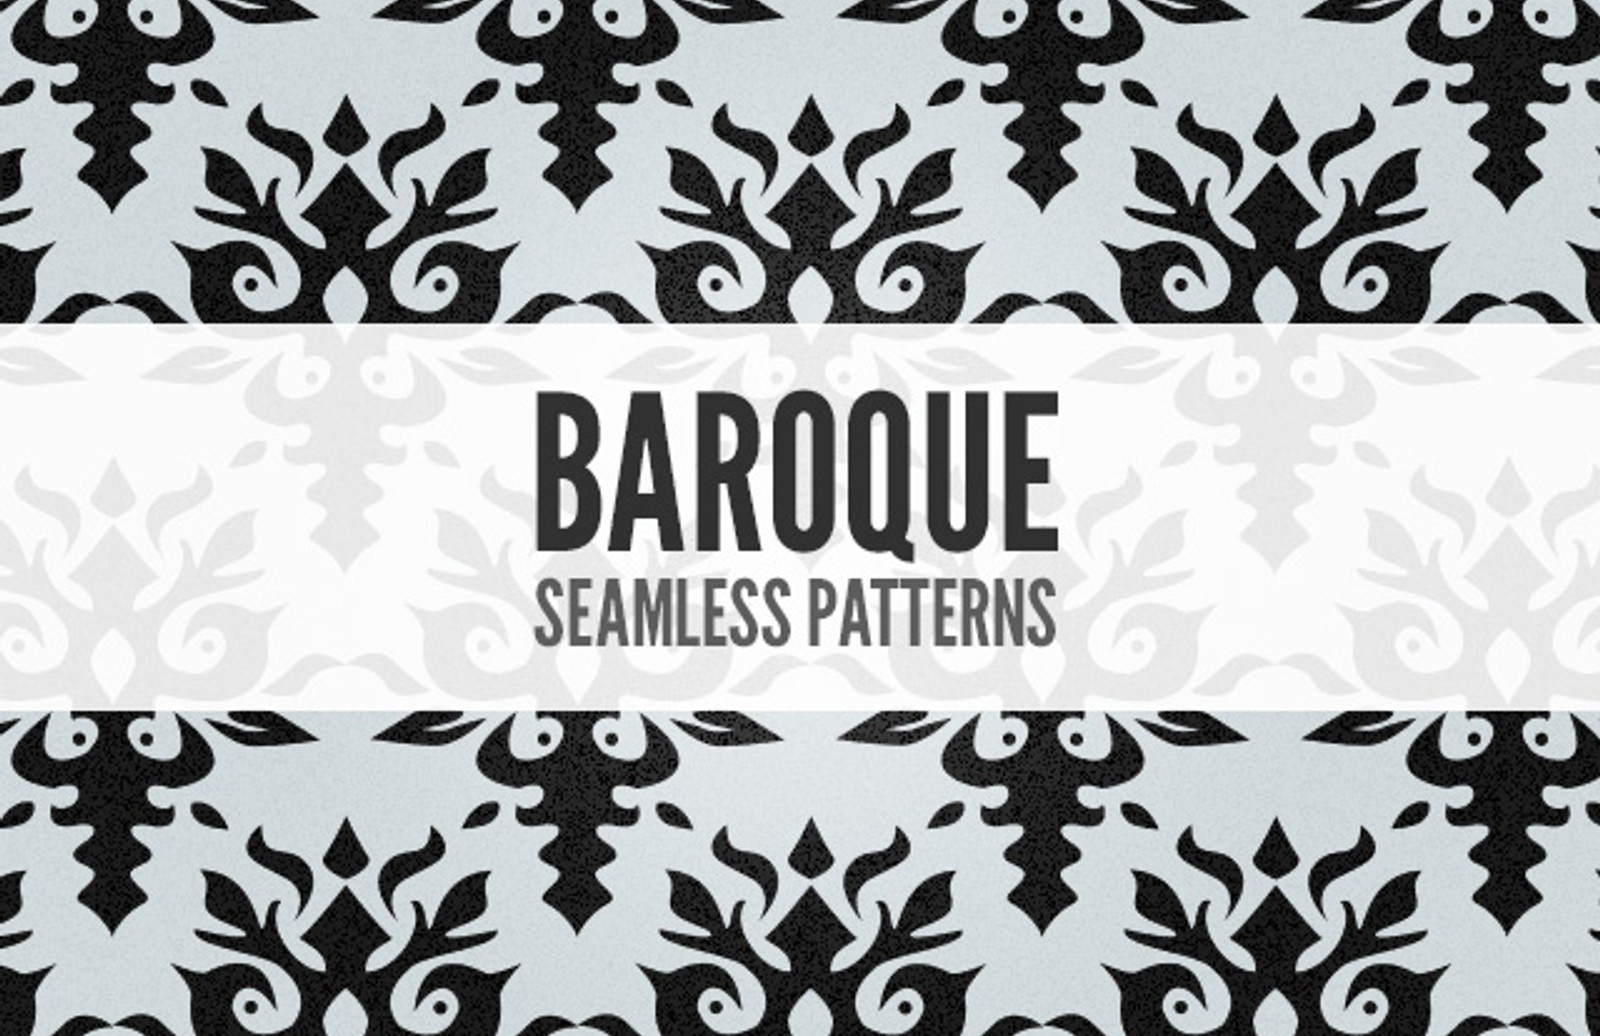 Seamless  Baroque  Patterns  Preview1